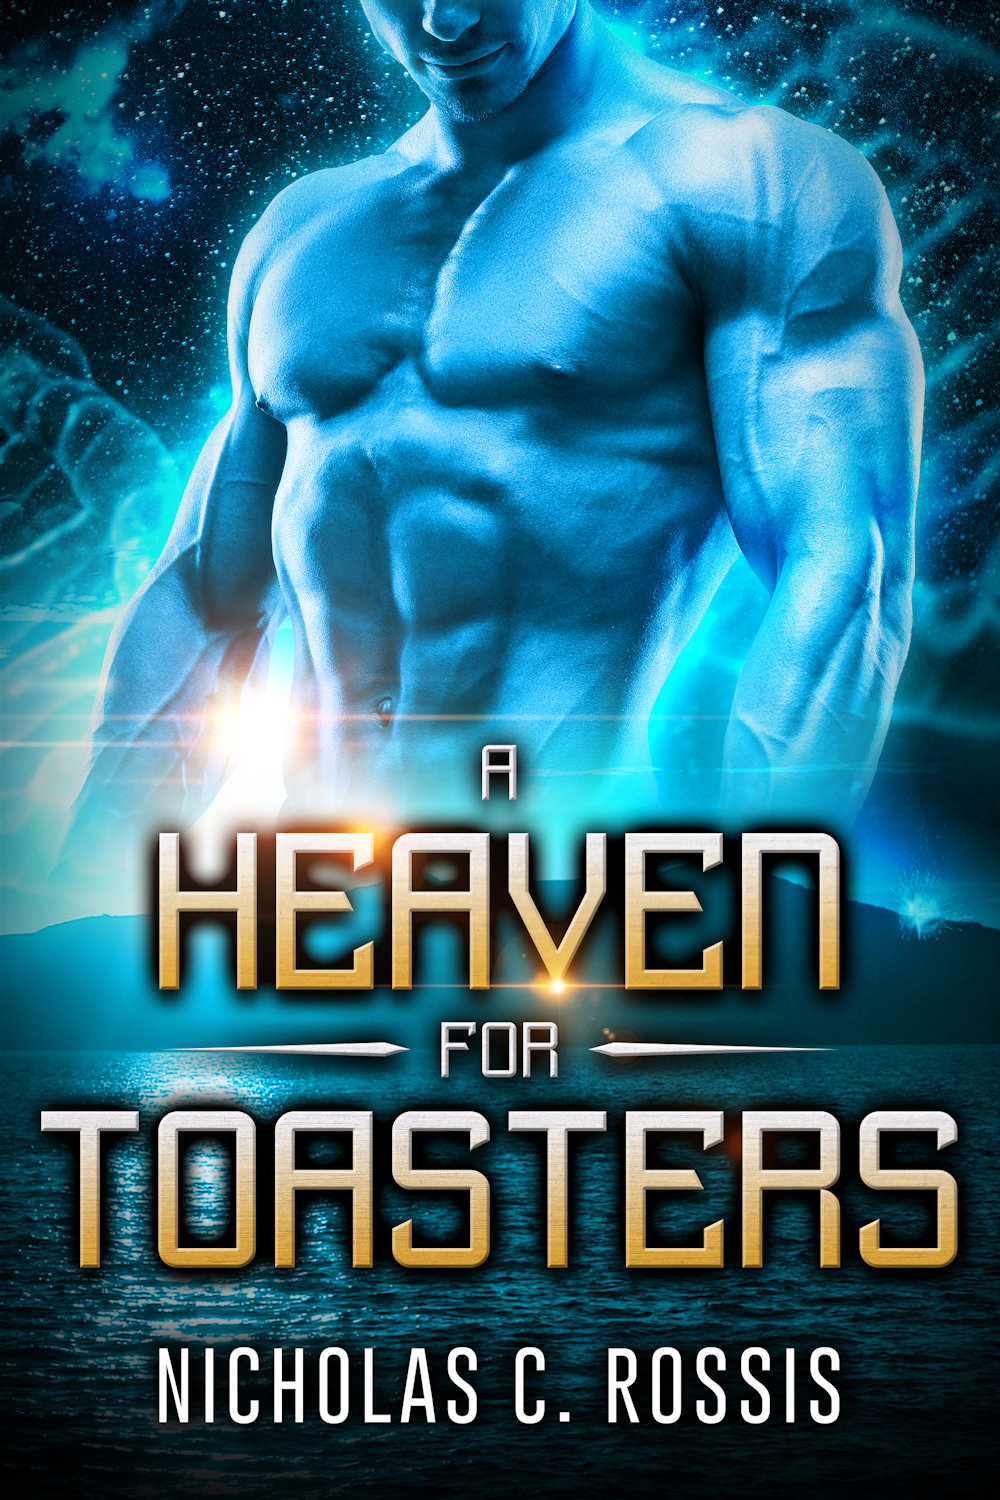 Nicholas C. Rossis - A Heaven for Toasters